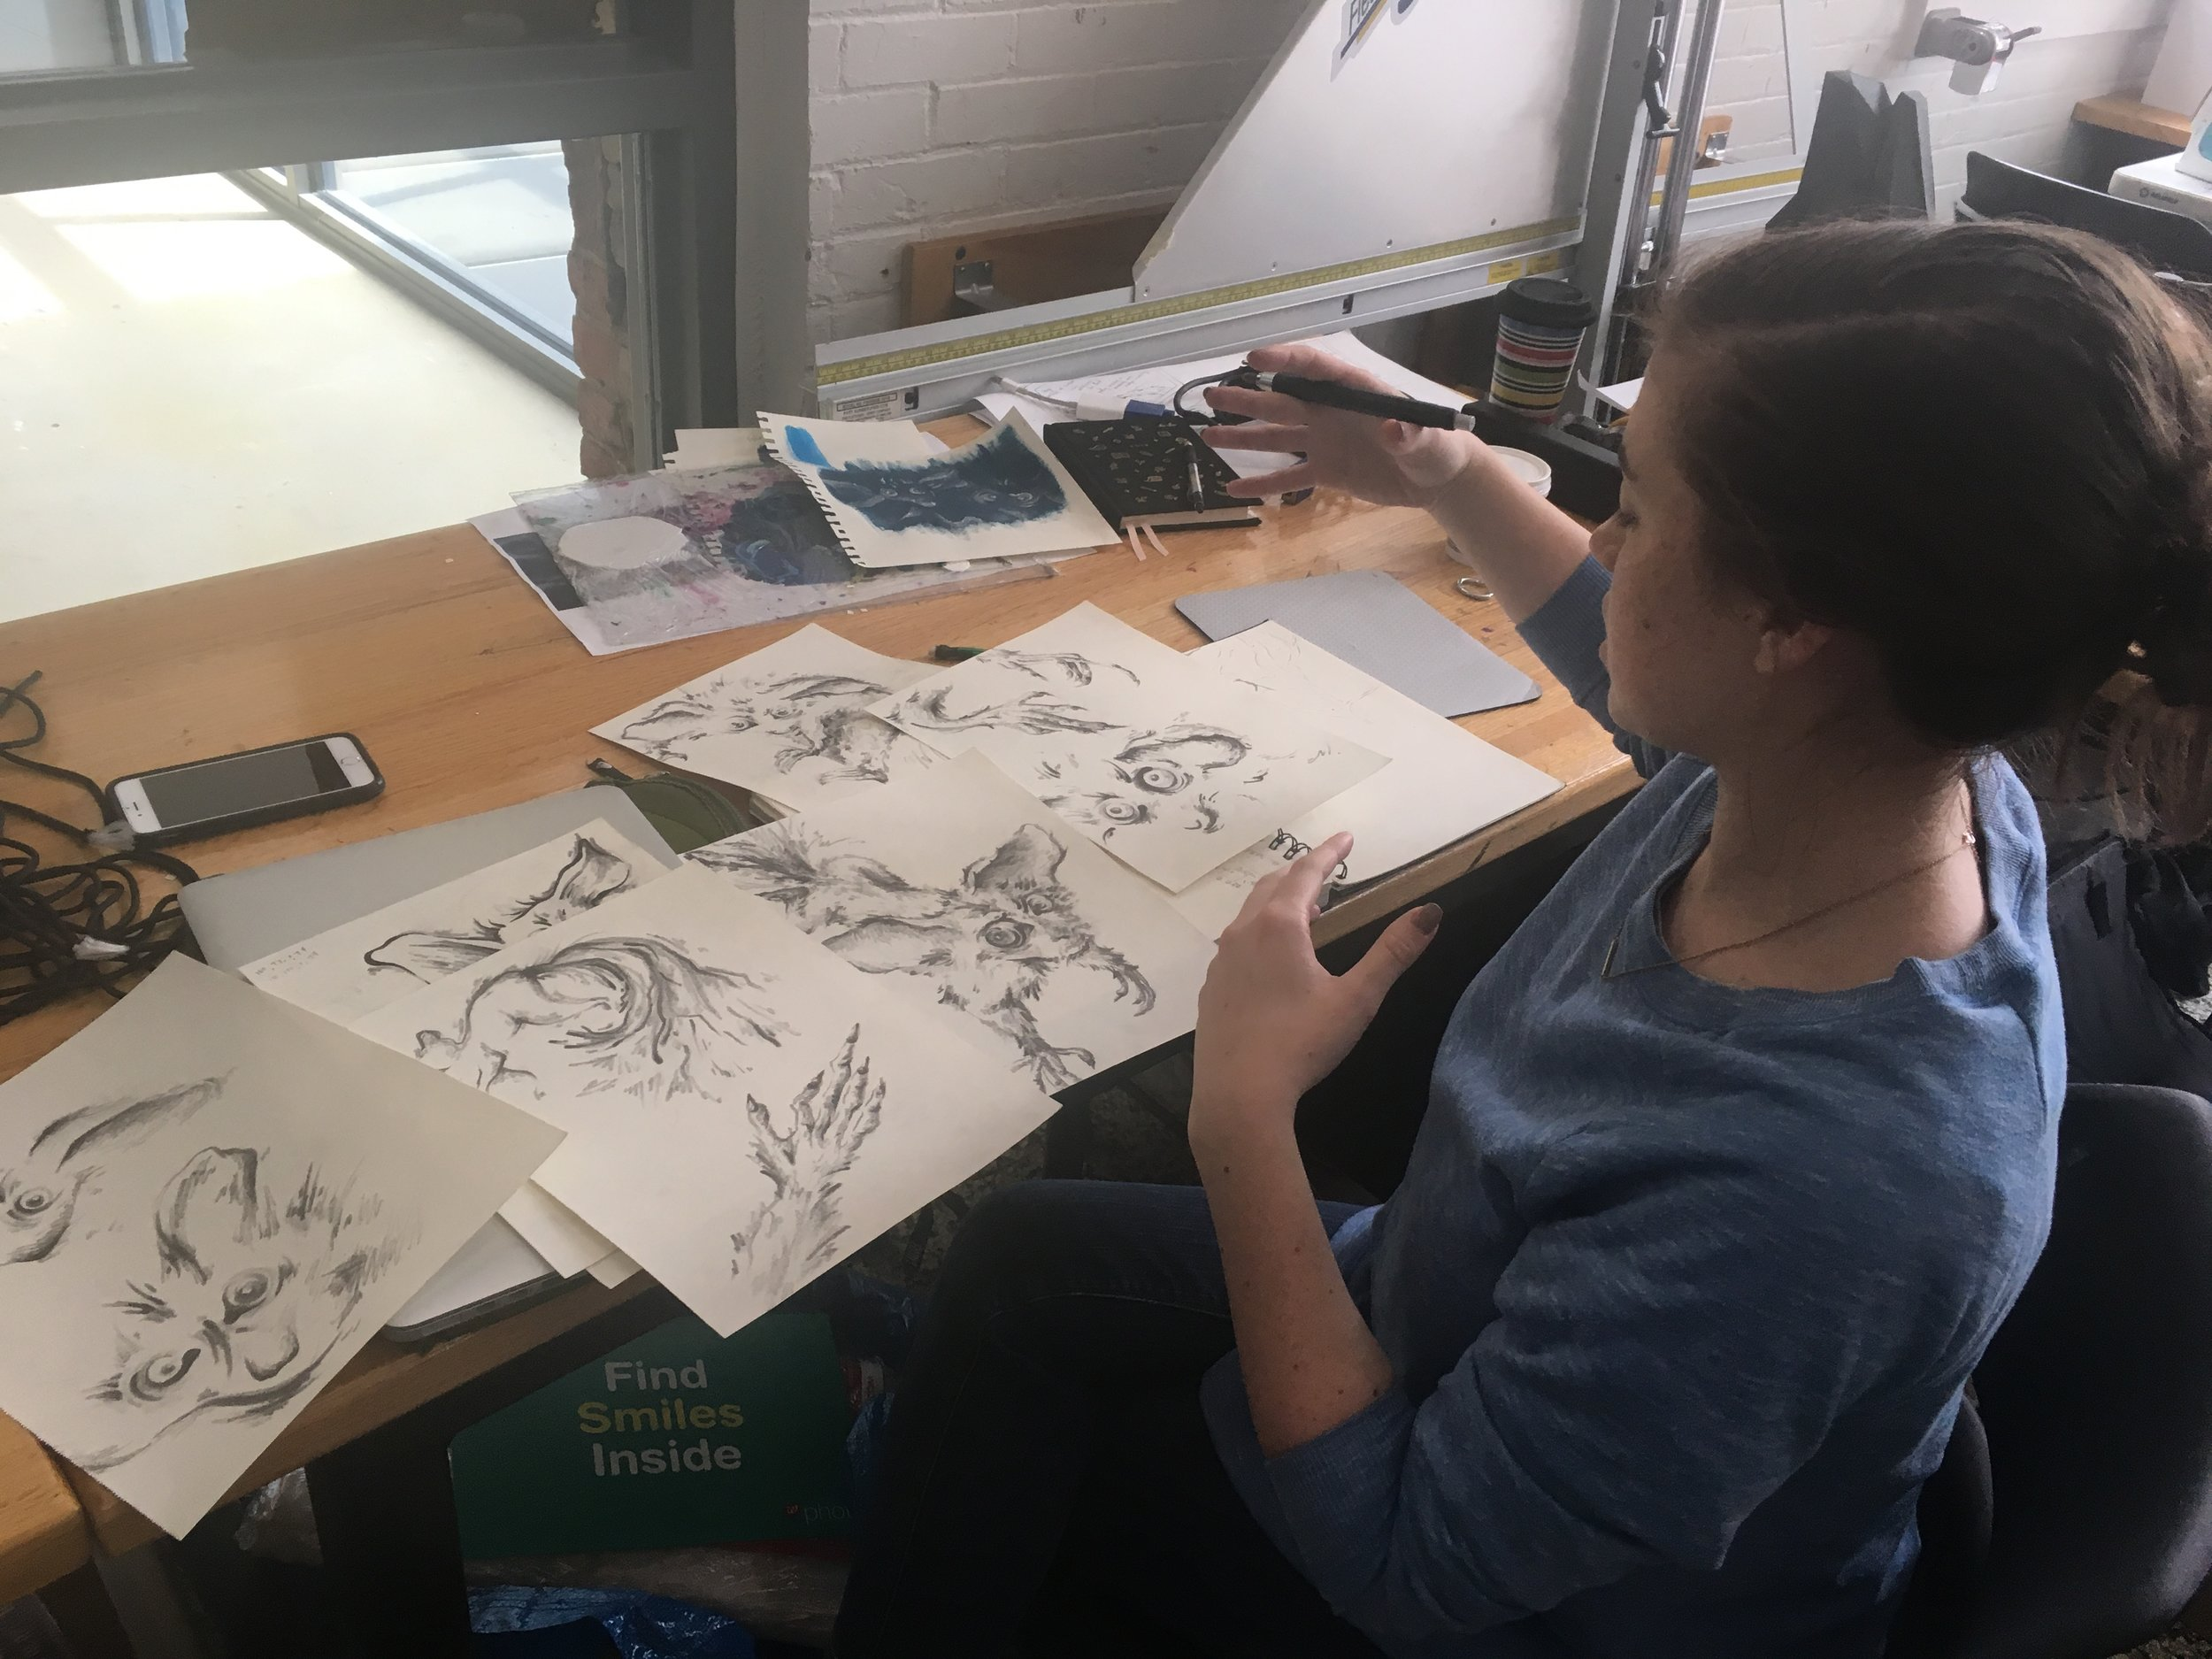 Sarah Albright sketching aye-aye graphics for the piece.